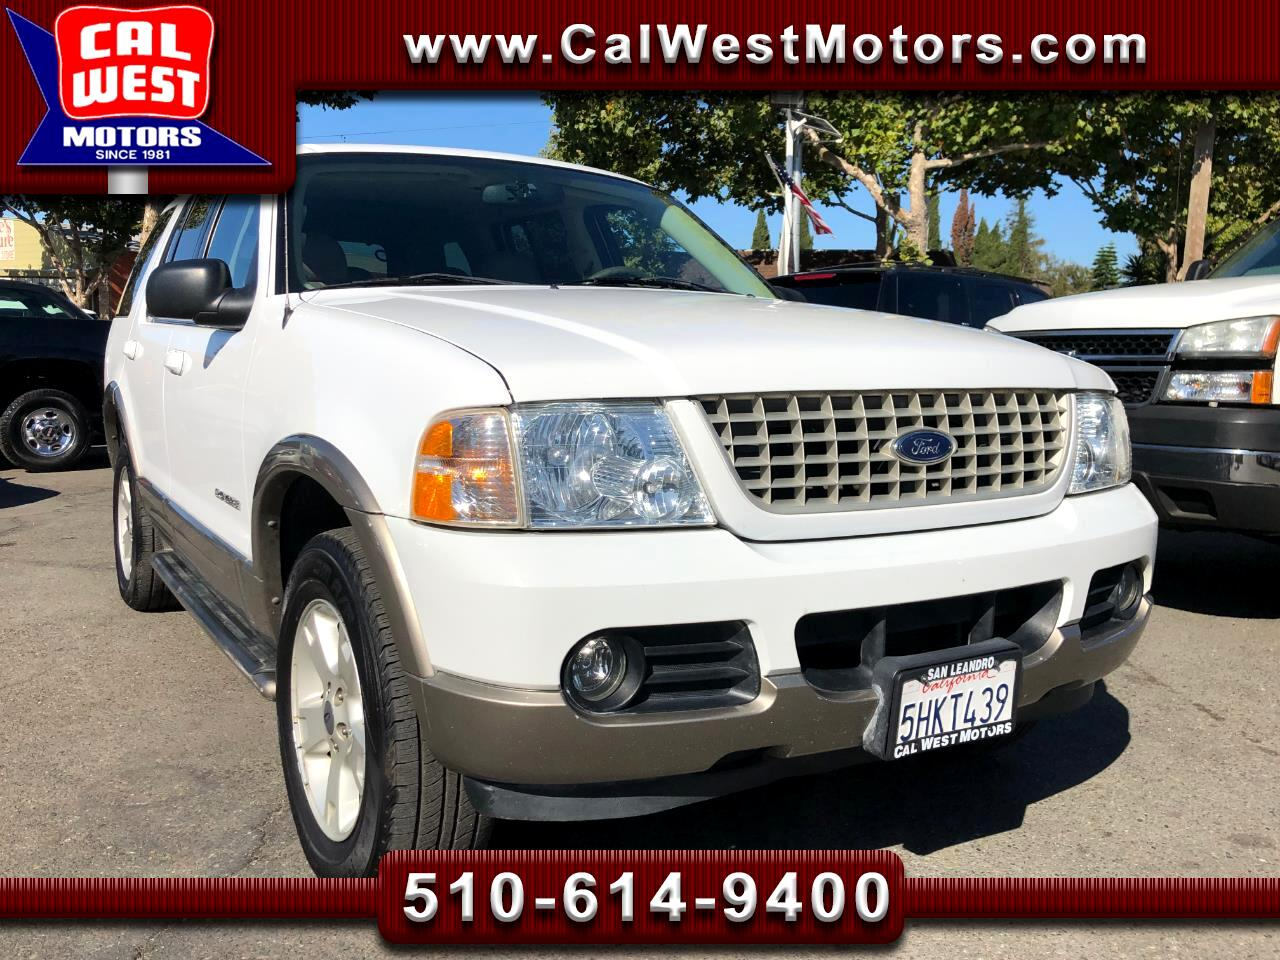 2004 Ford Explorer 4WD Eddie Bauer 4.6L 3Rows VeryClean GreatMtnce